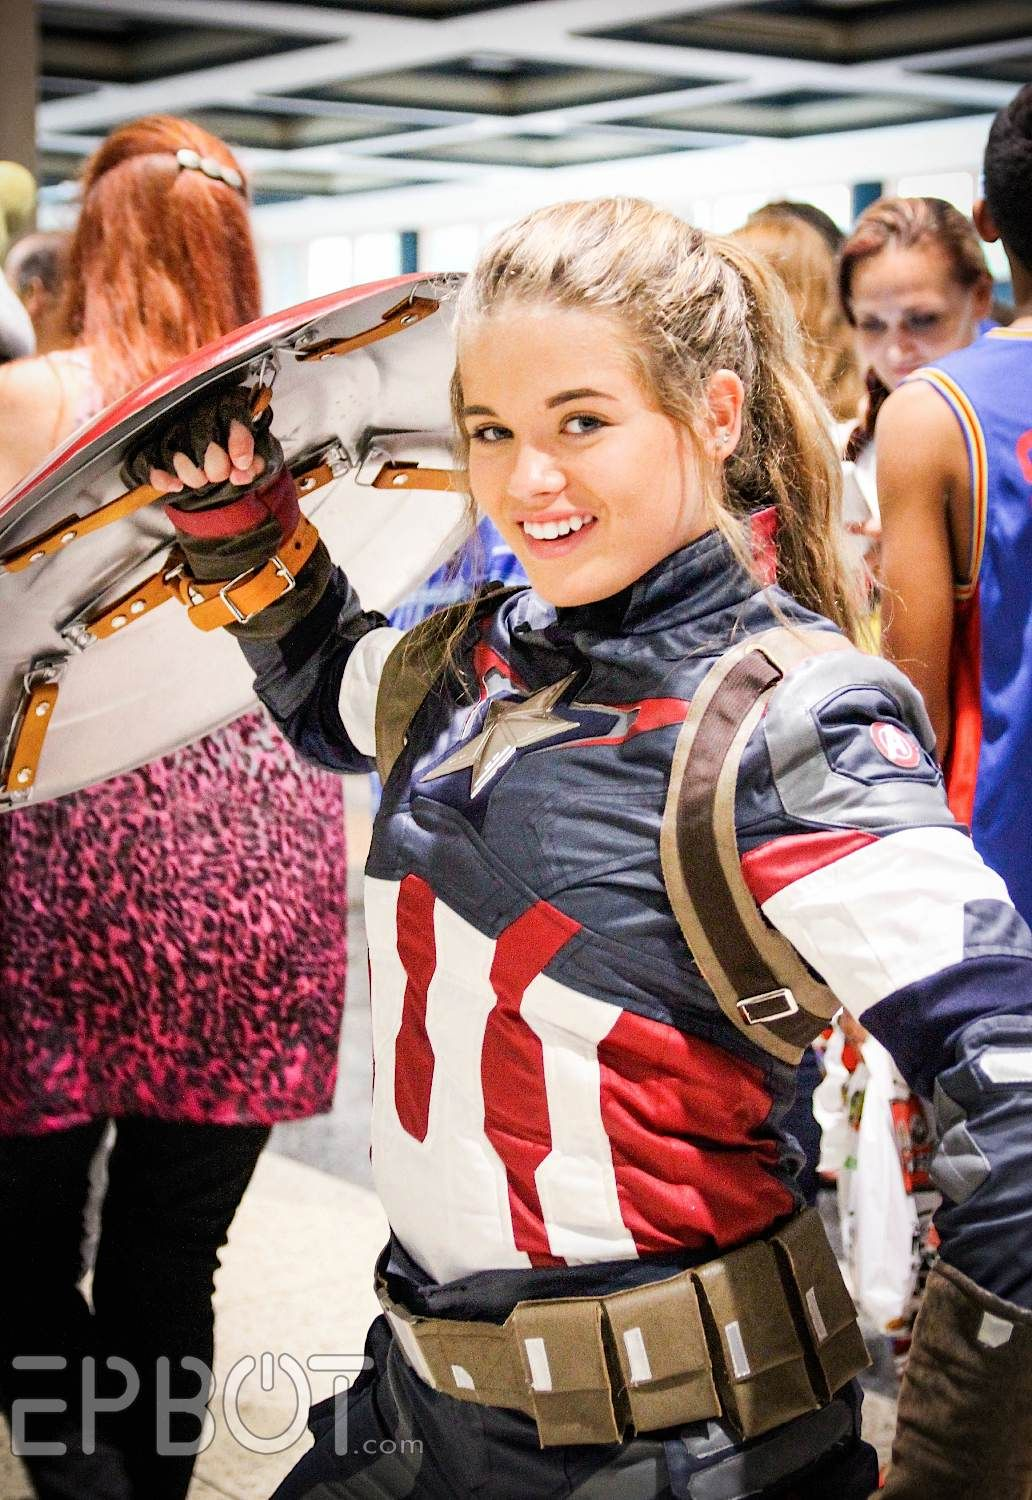 EPBOT: Tampa Bay Comic-Con 2015, Part 2 | Fem Cap | Comic